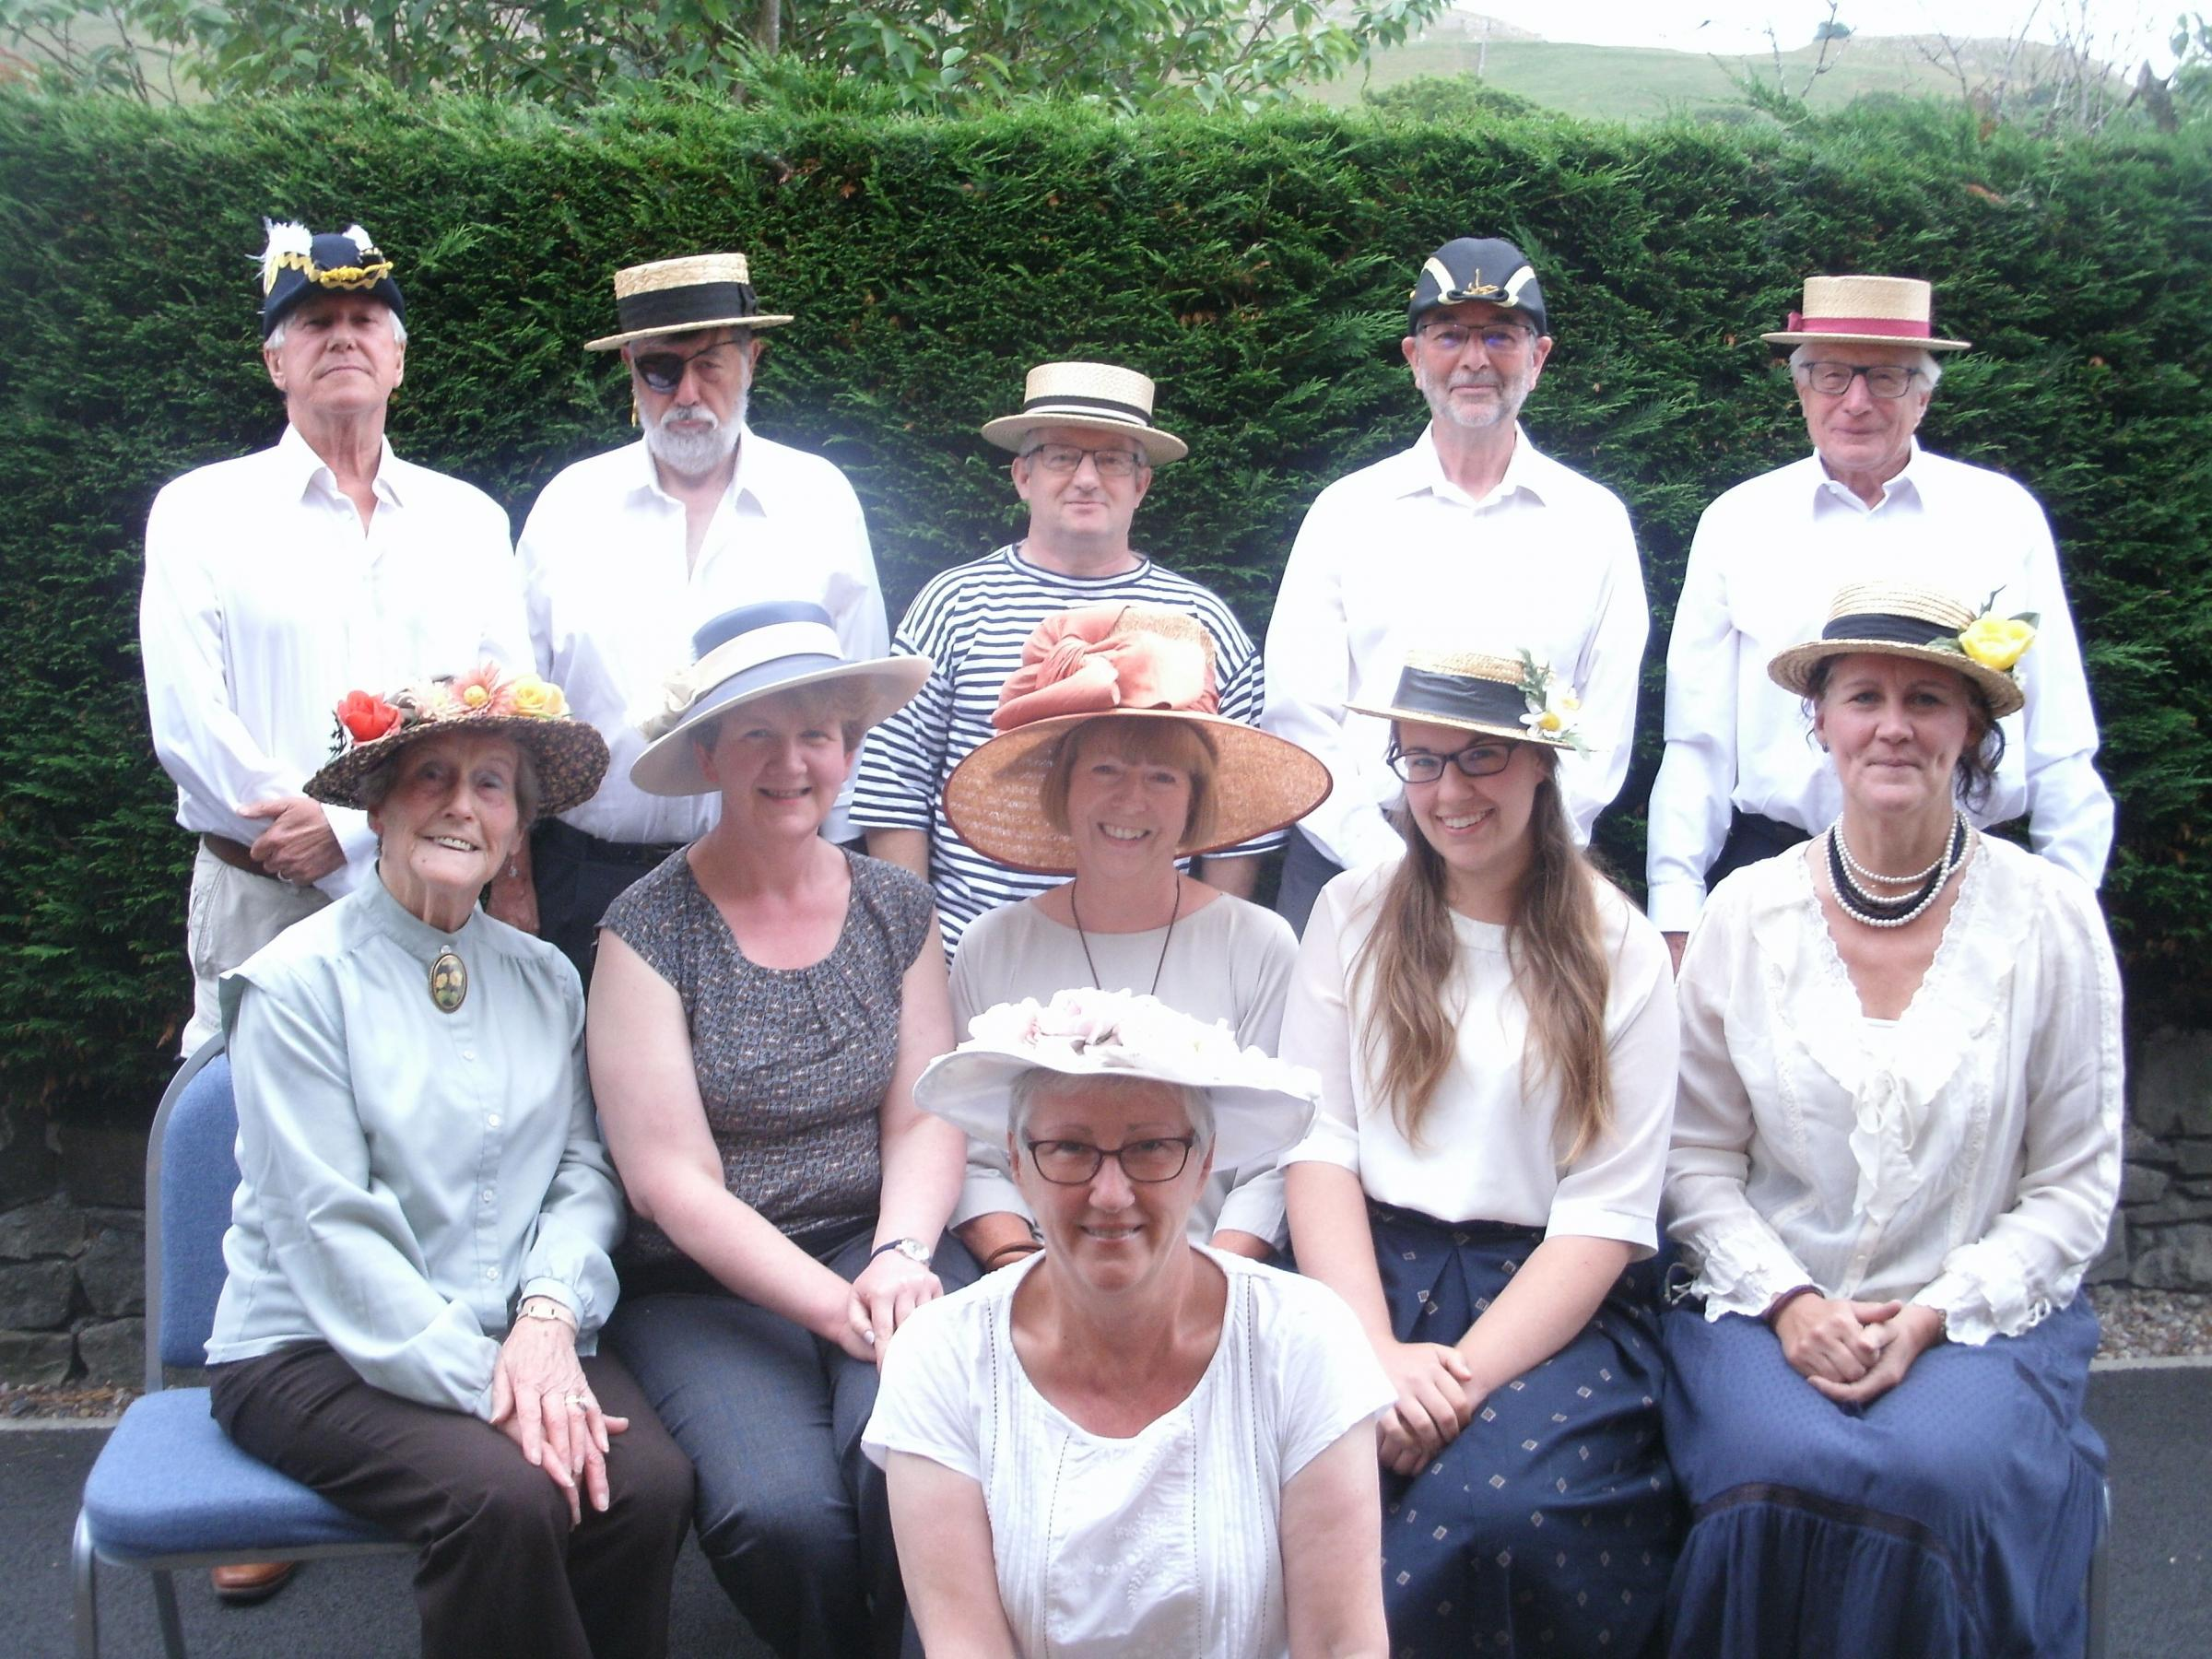 Langcliffe Singers performed HMS Pinafore at the Victoria Hall in Settle